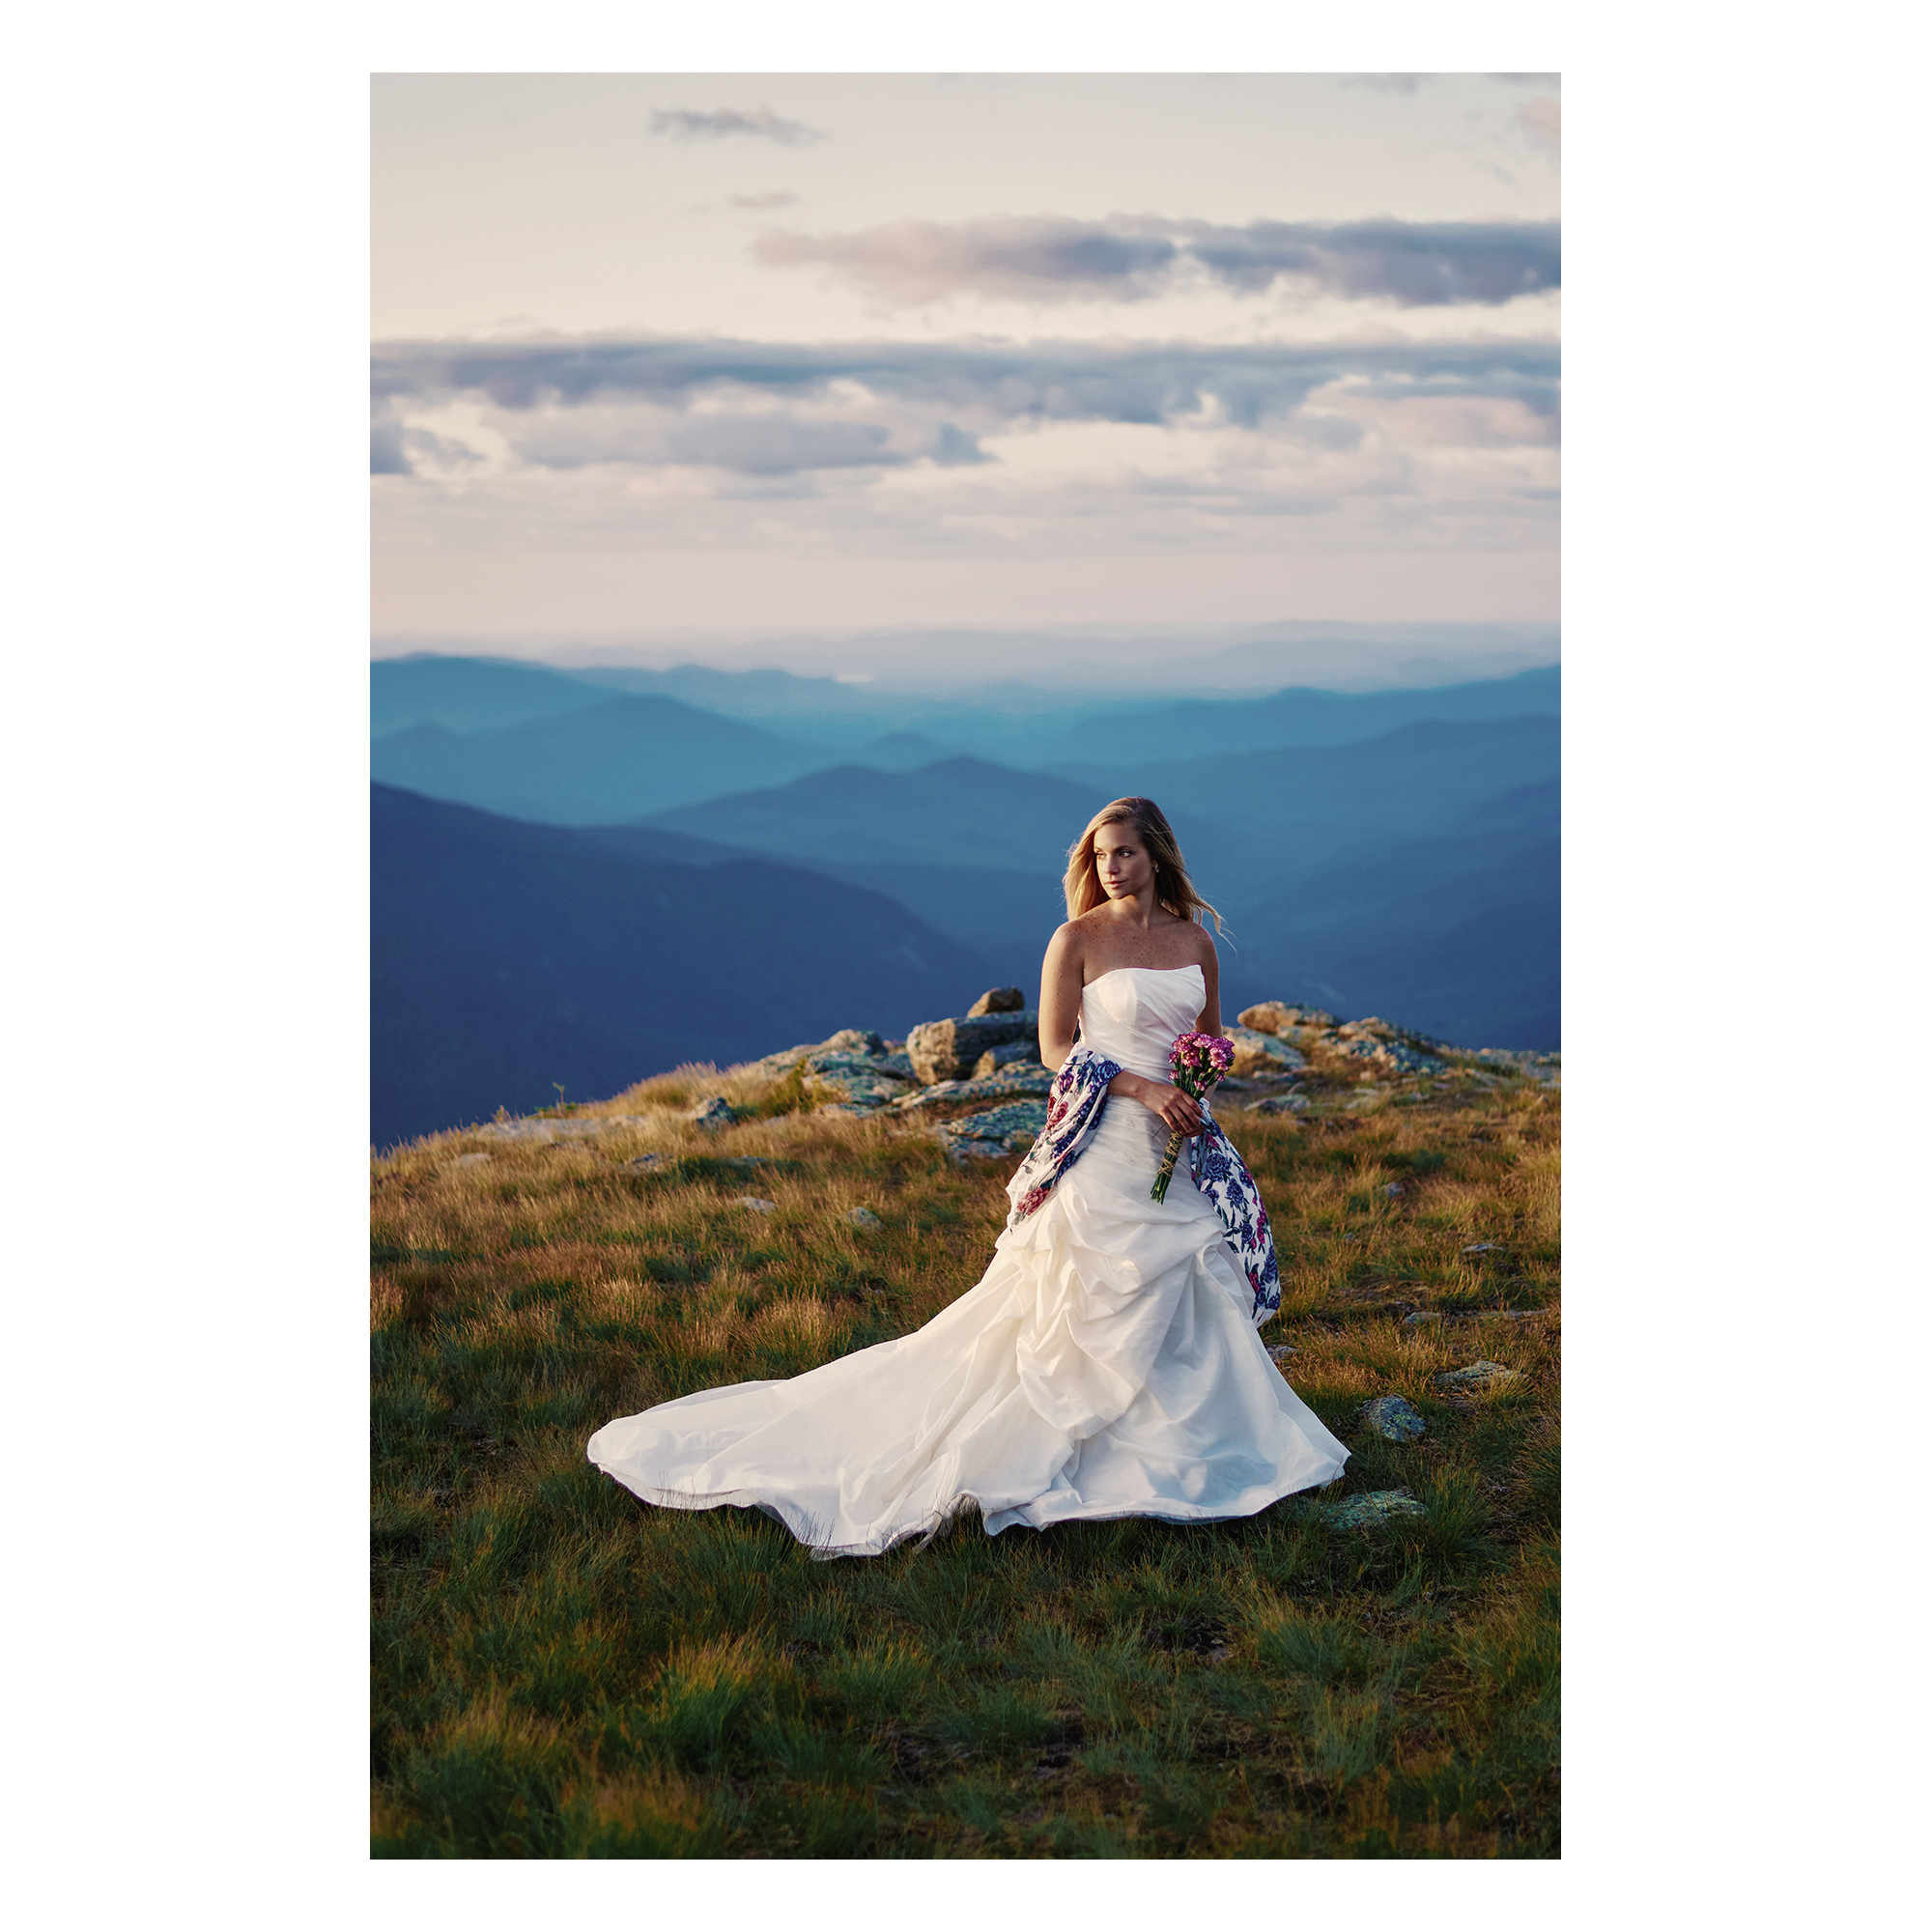 Bridal photo shoot with Emily on Mount Washington in New Hampshire at sunrise